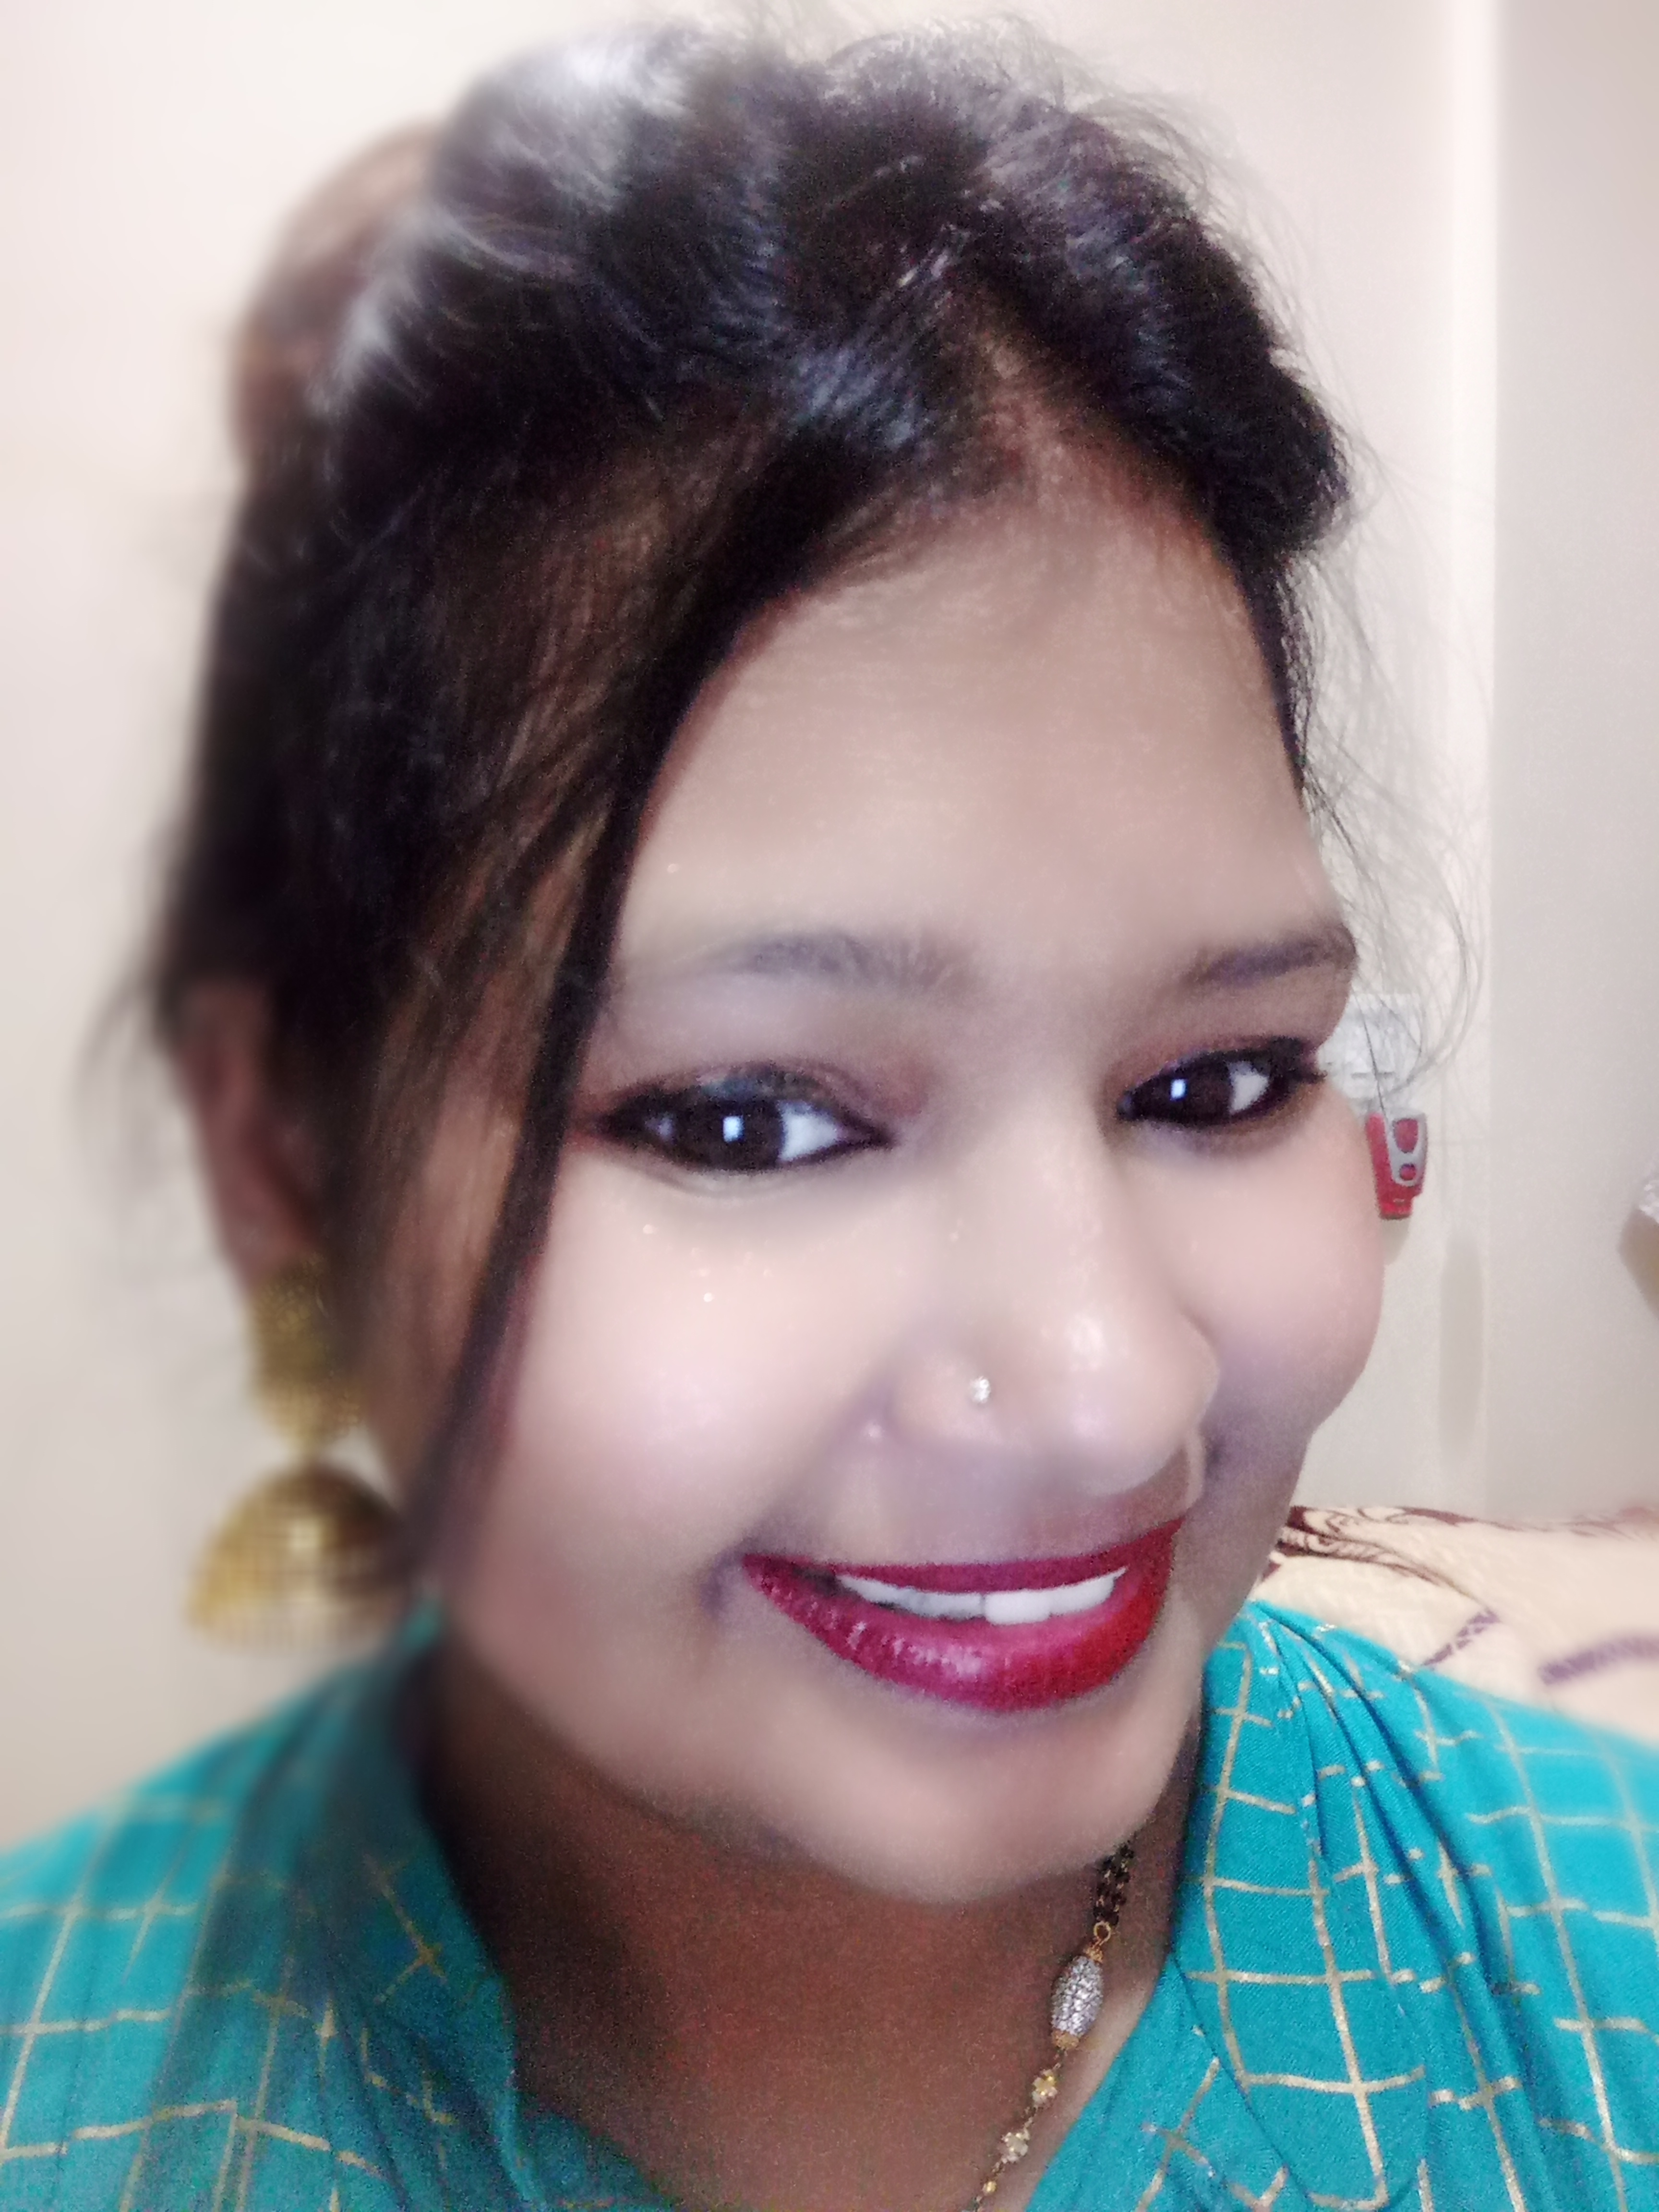 NYX Professional Makeup That's The Point Eyeliner-Awsome and best-By jain_shruti